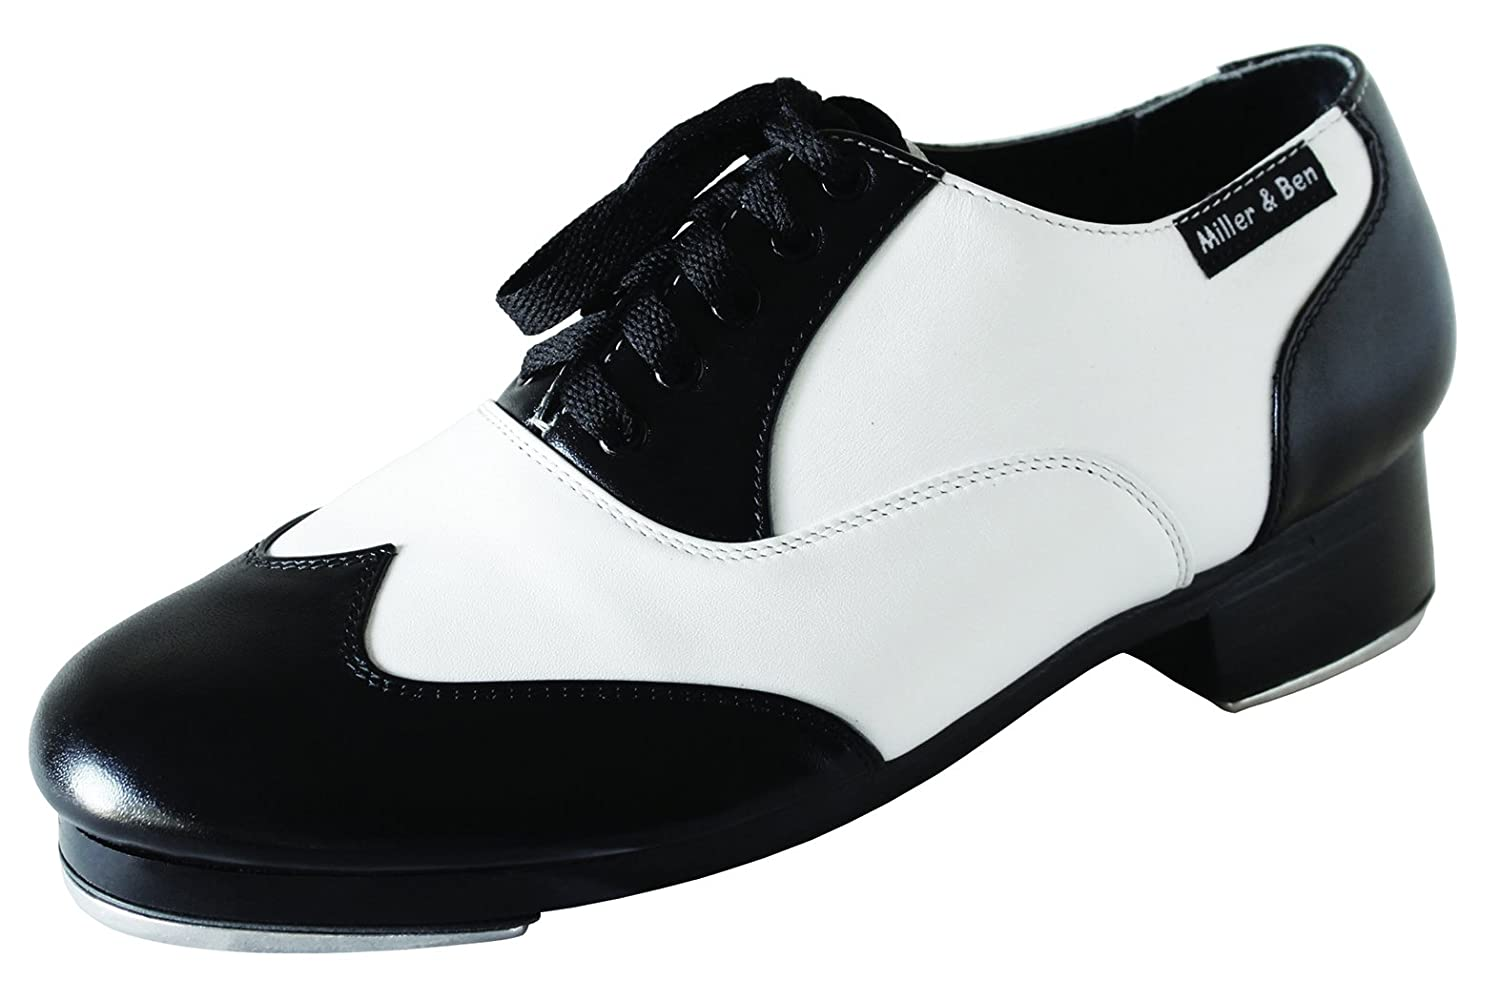 1940s Style Shoes, 40s Shoes Miller & Ben Tap Shoes Jazz-Tap Master Black & White - STANDARD SIZES $285.00 AT vintagedancer.com